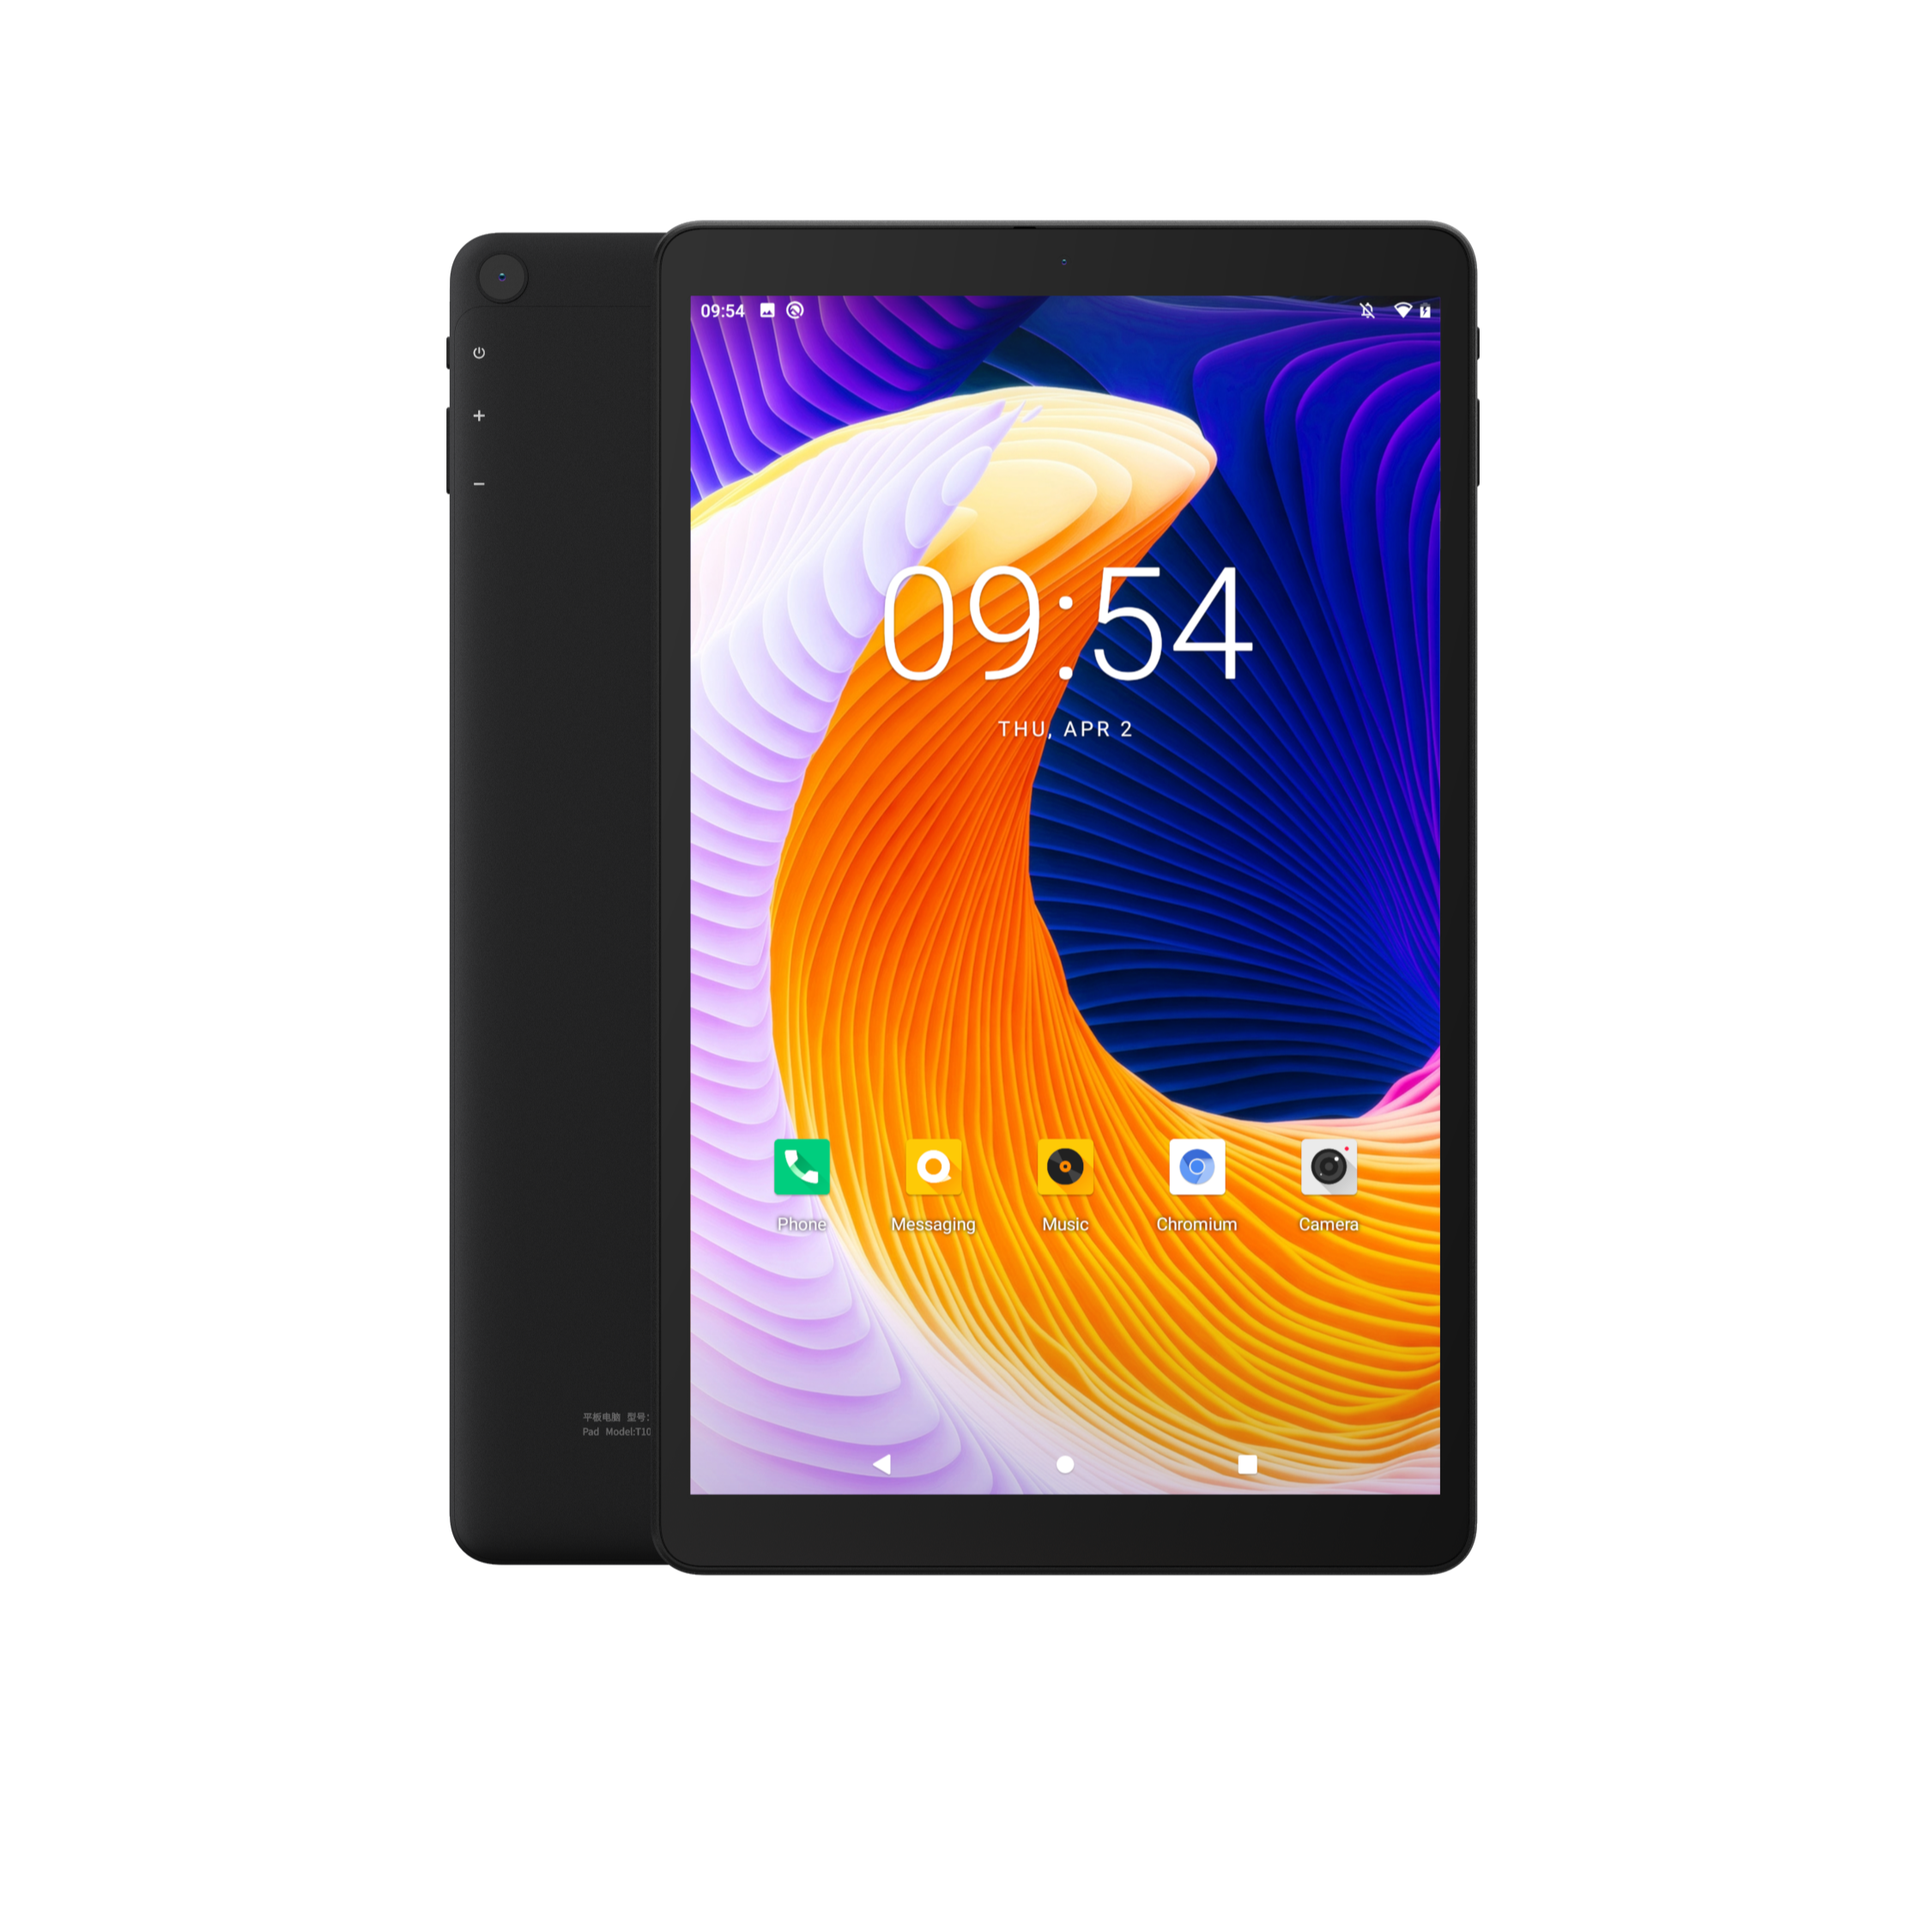 ALLDOCUBE IPLAY20 /T1011 10.1 inch 4G LTE Android Spreadtrum 9863 Octa Core Tablets PC 1920*1200 FHD IPS 4GB/64GB 2.4G/5G WIFI